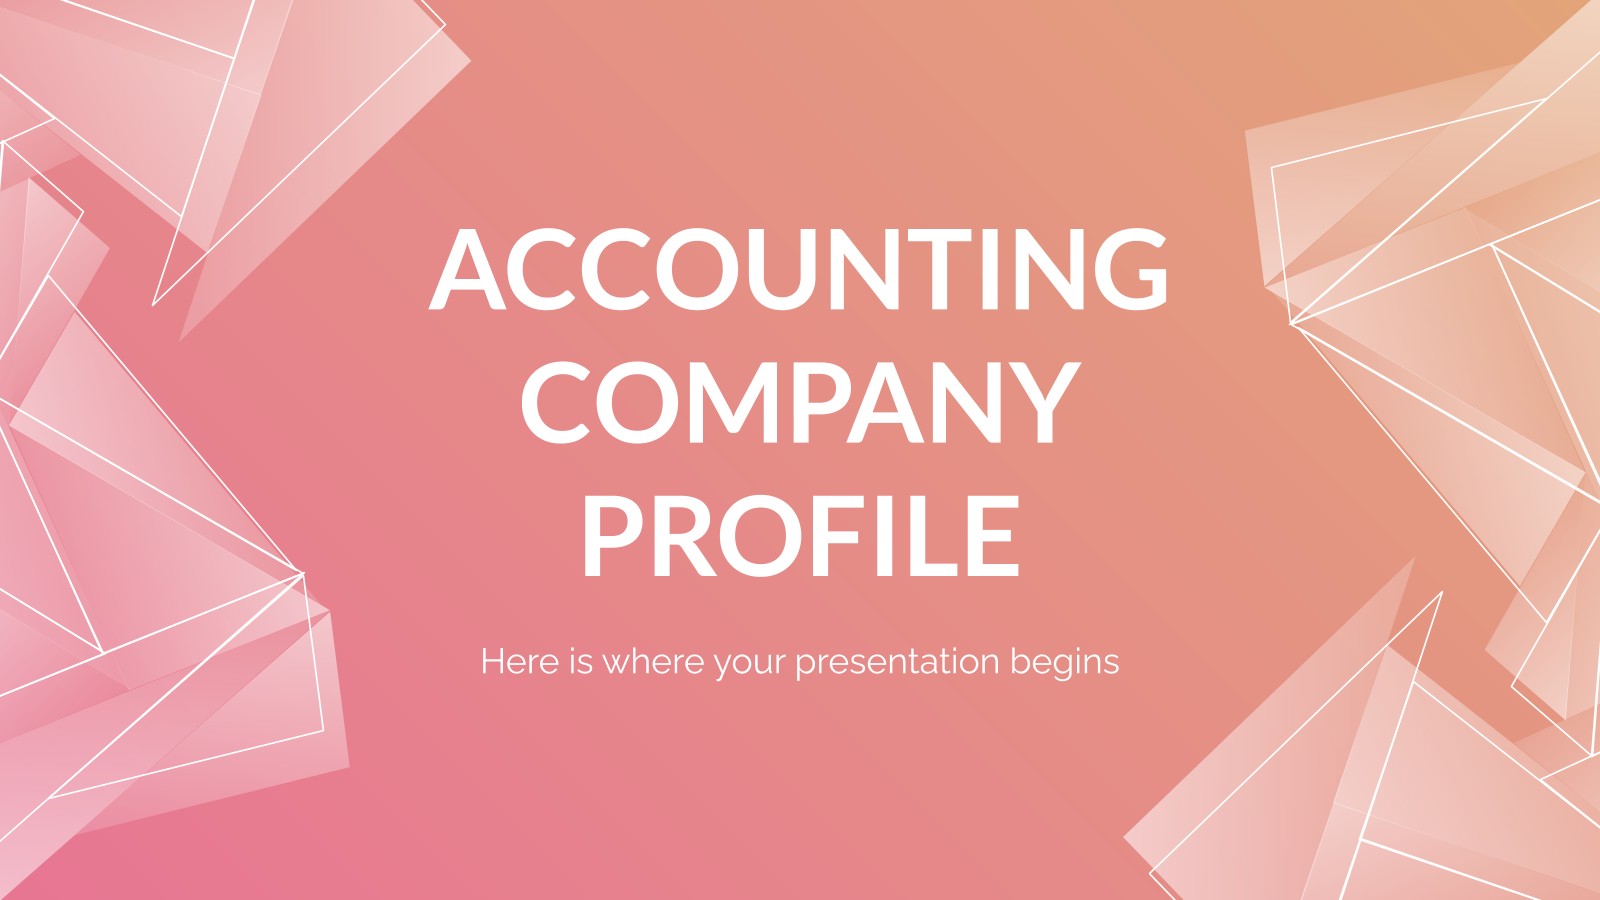 Accounting Company Profile presentation template